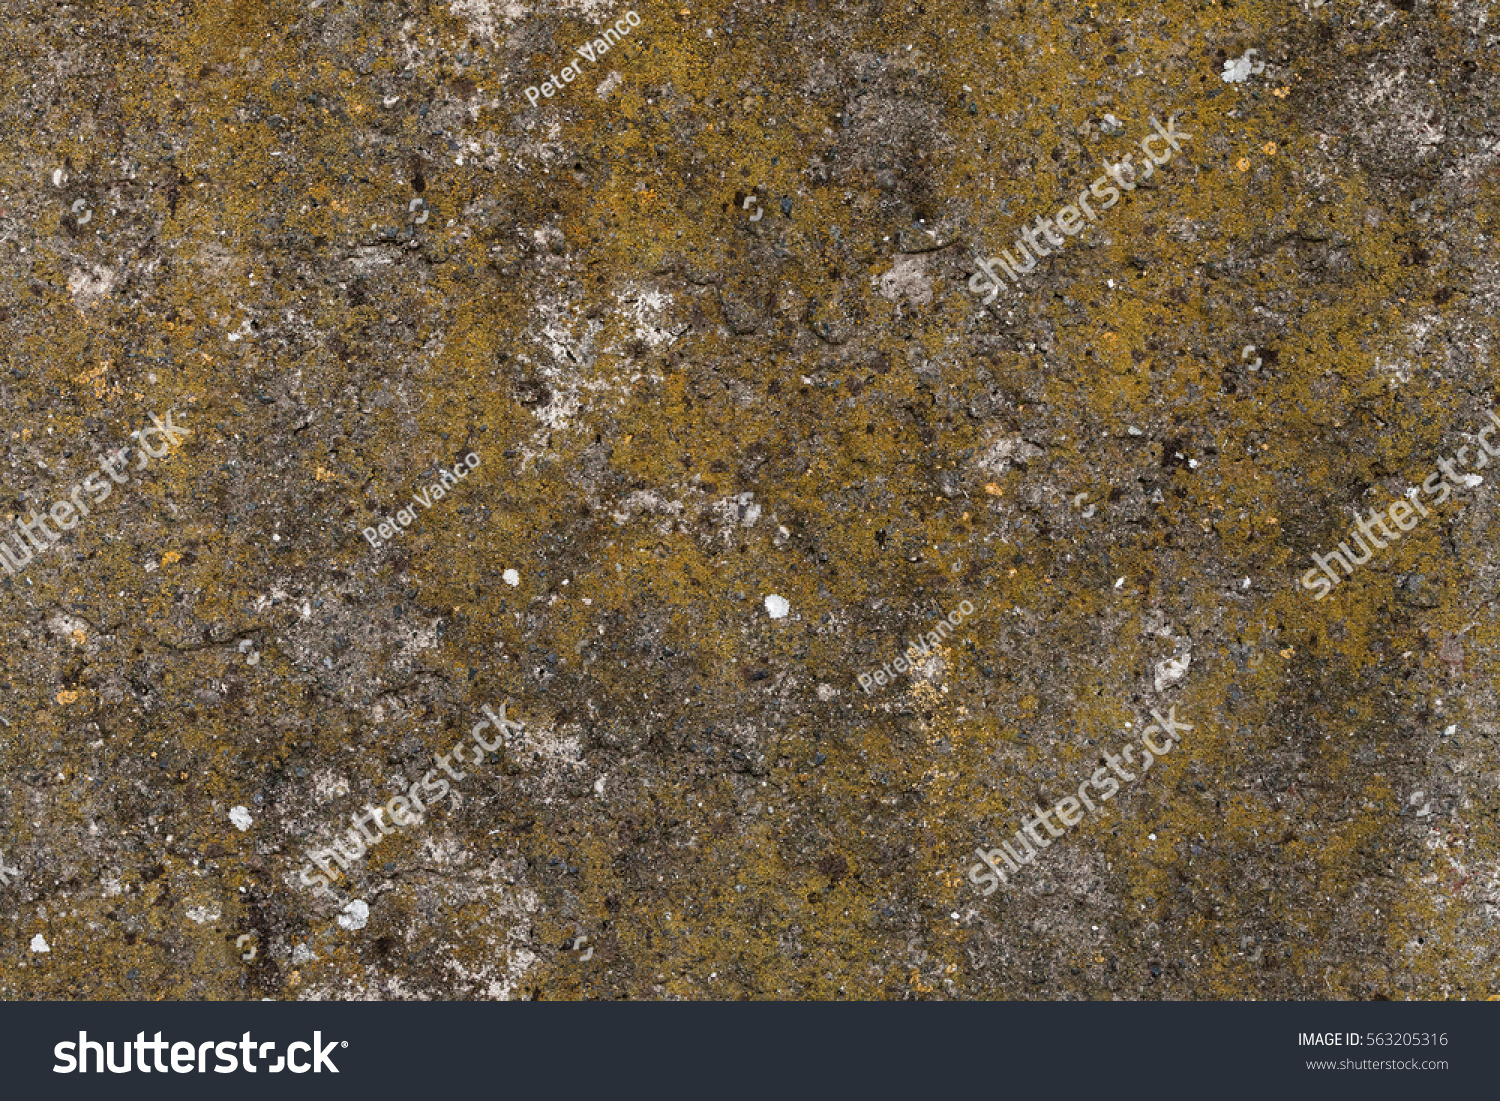 Old concrete wall moss on texture stock photo 563205316 for Old concrete wall texture